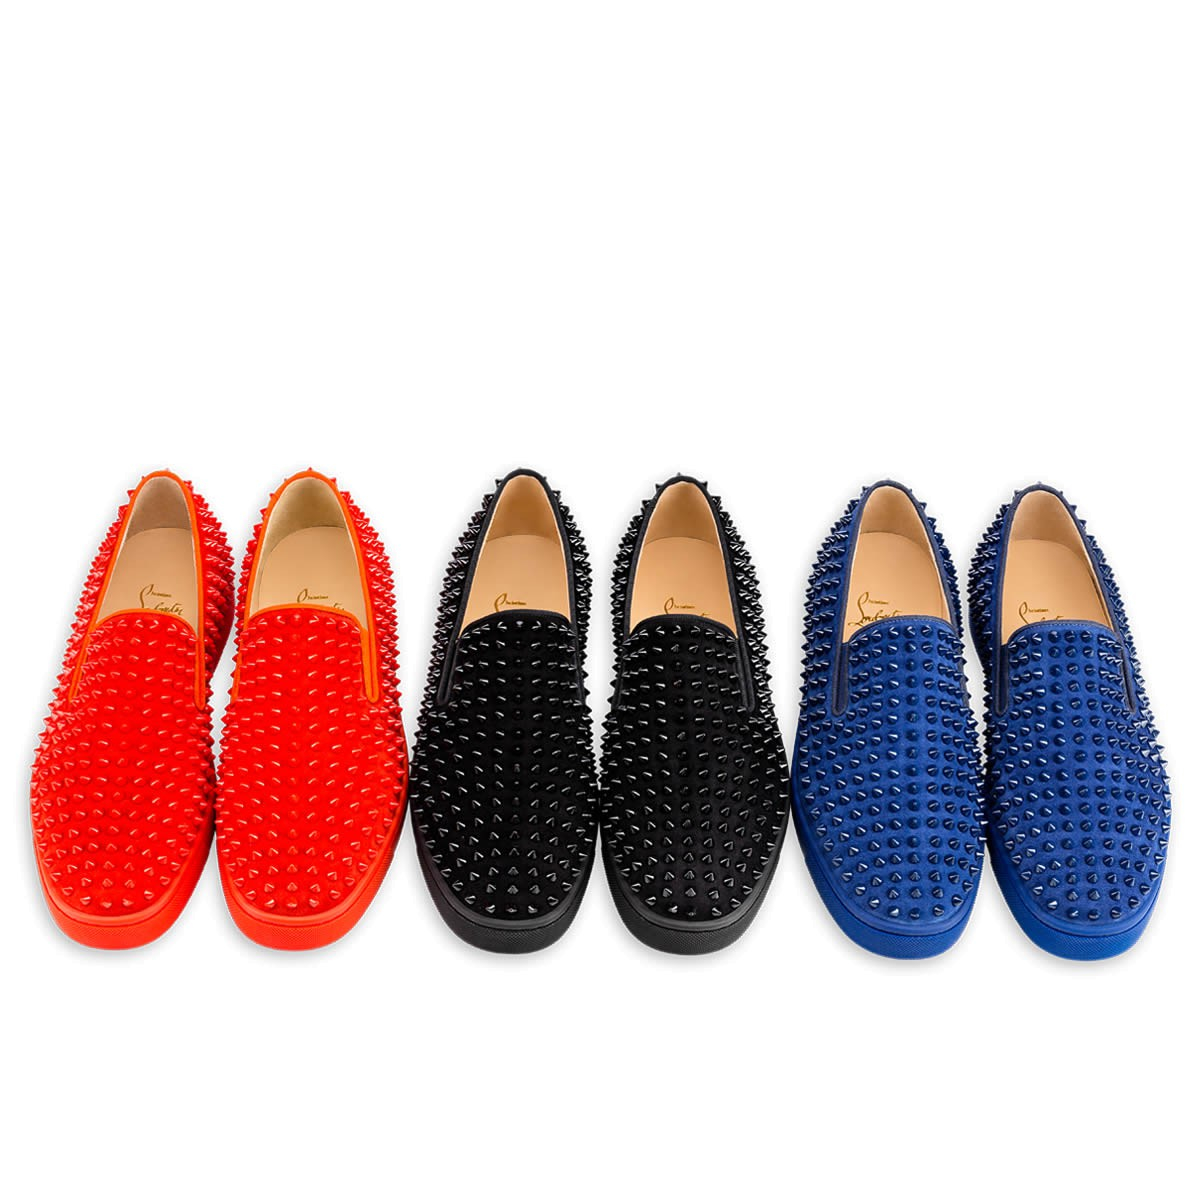 christian louboutin studded roller boat loafers